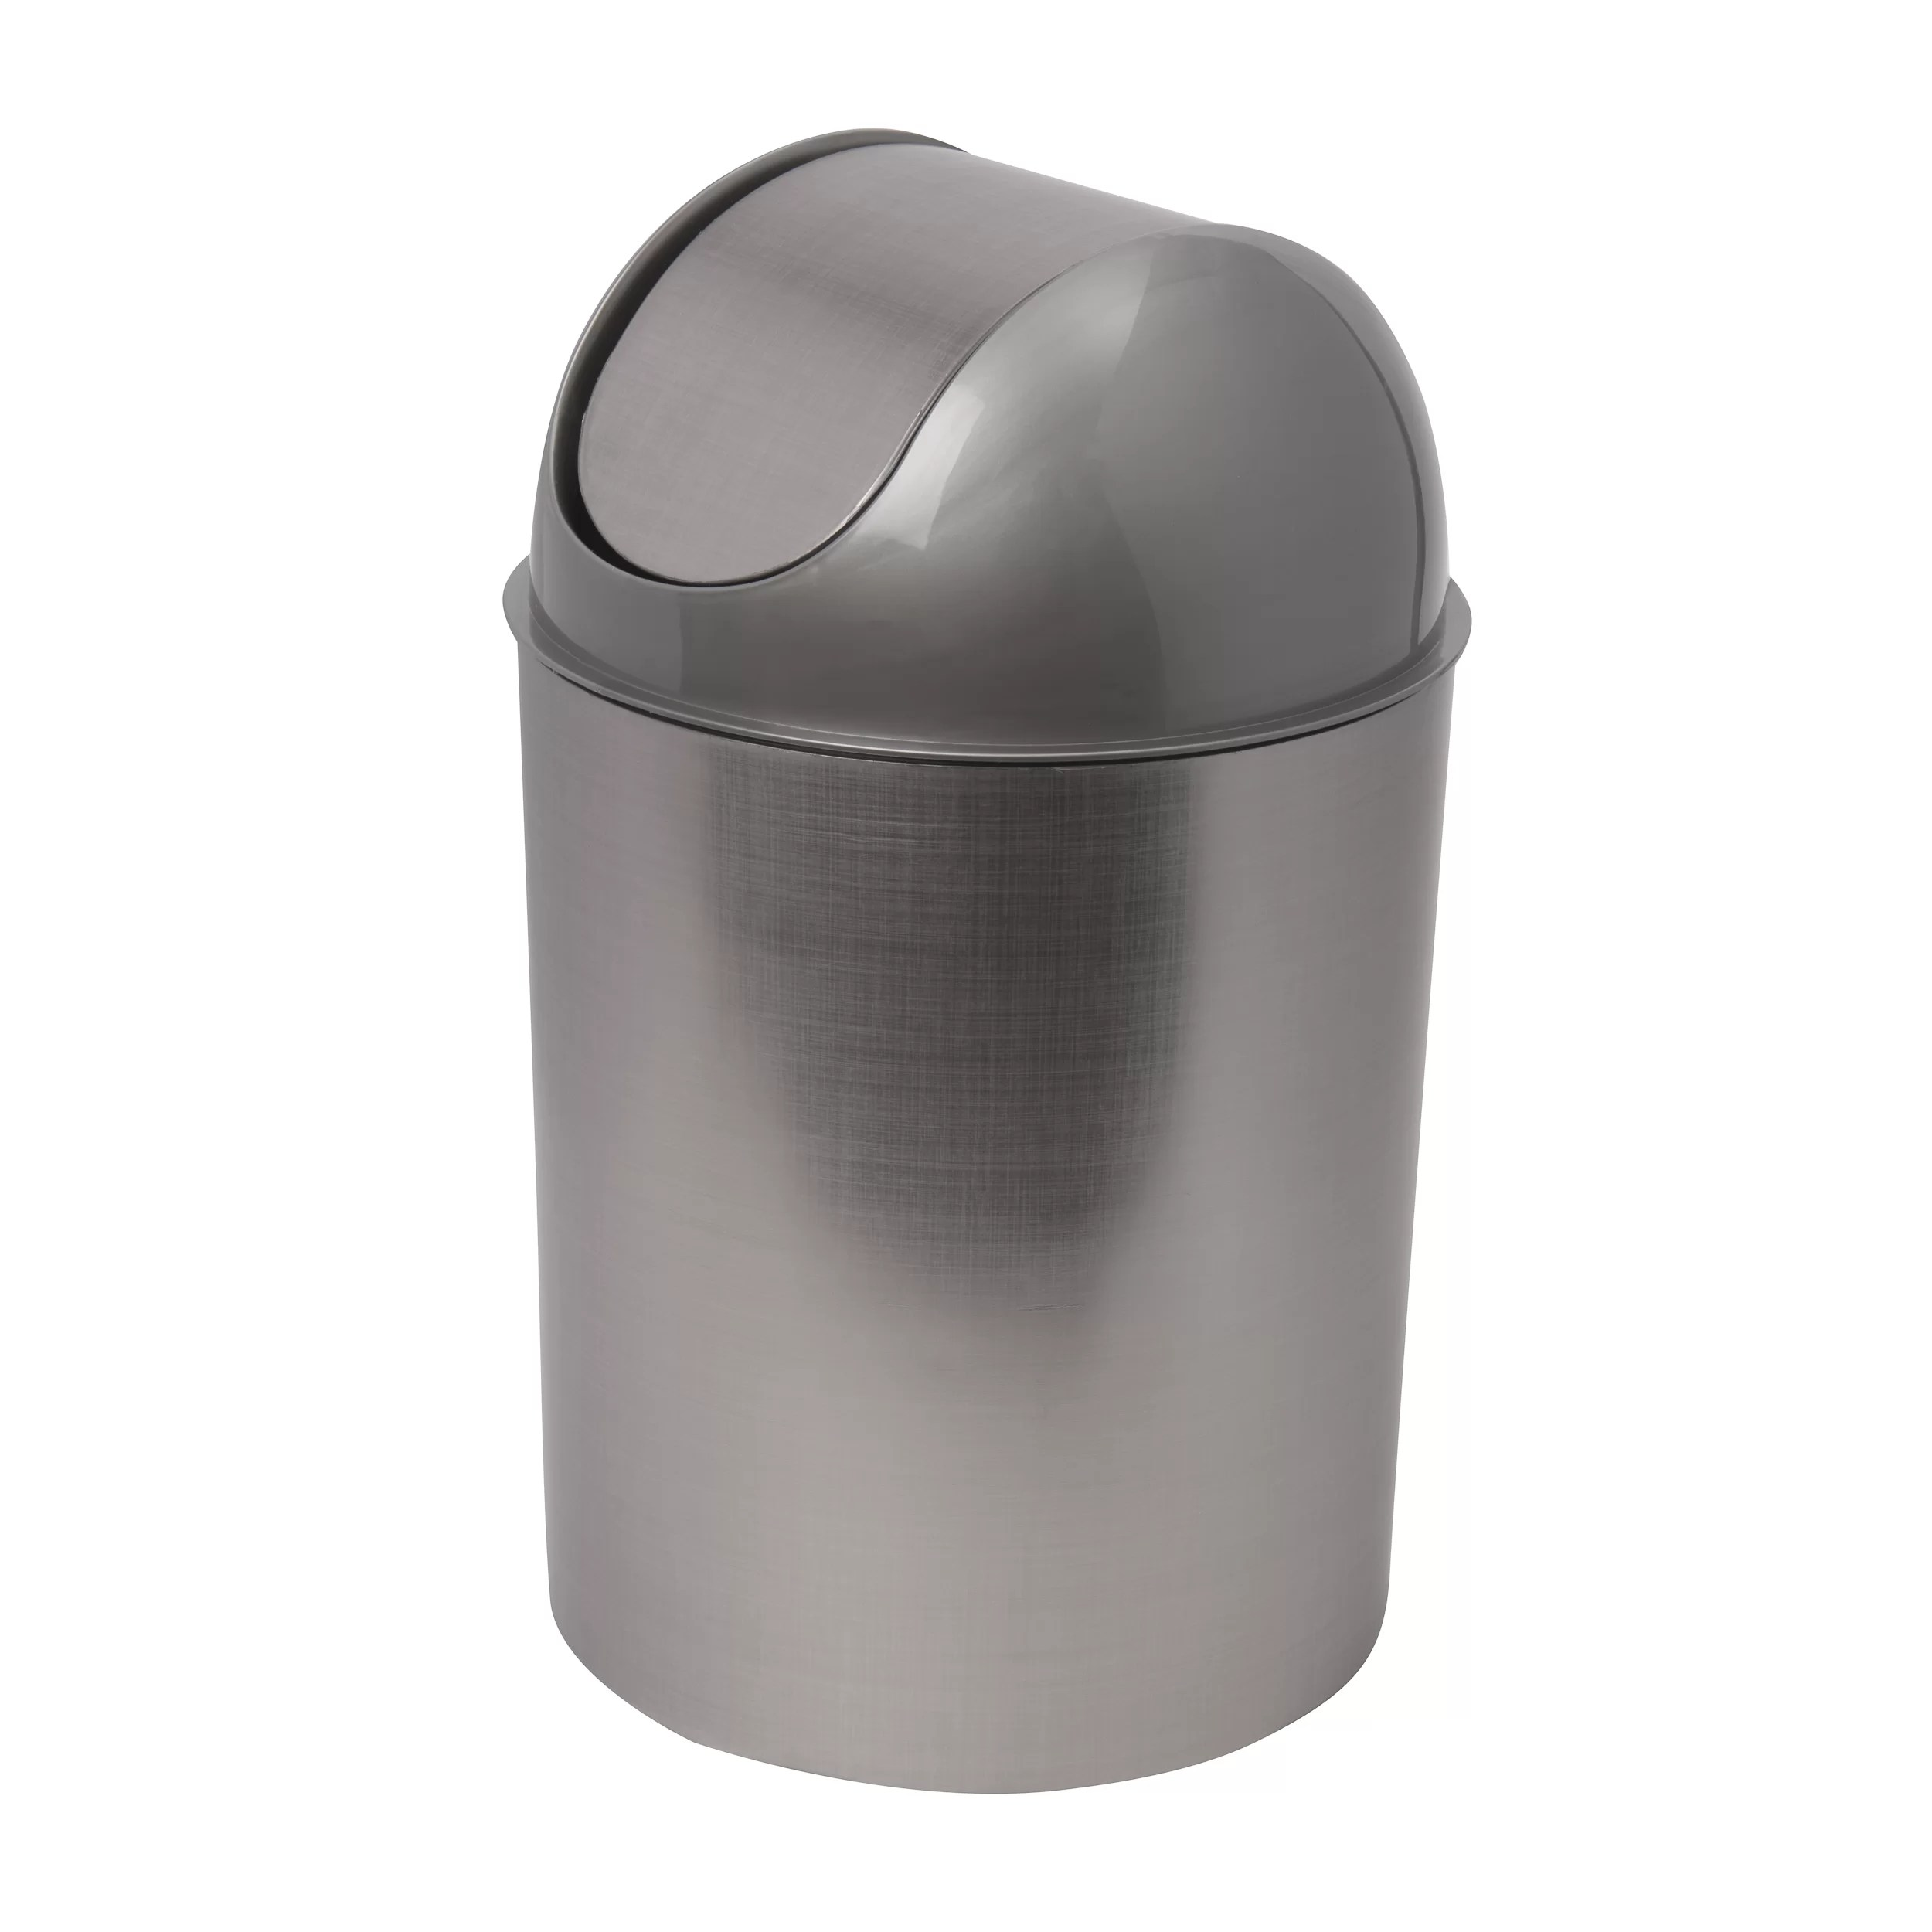 Small White Trash Can With Lid Mezzo Plastic 2 5 Gallon Swing Top Trash Can